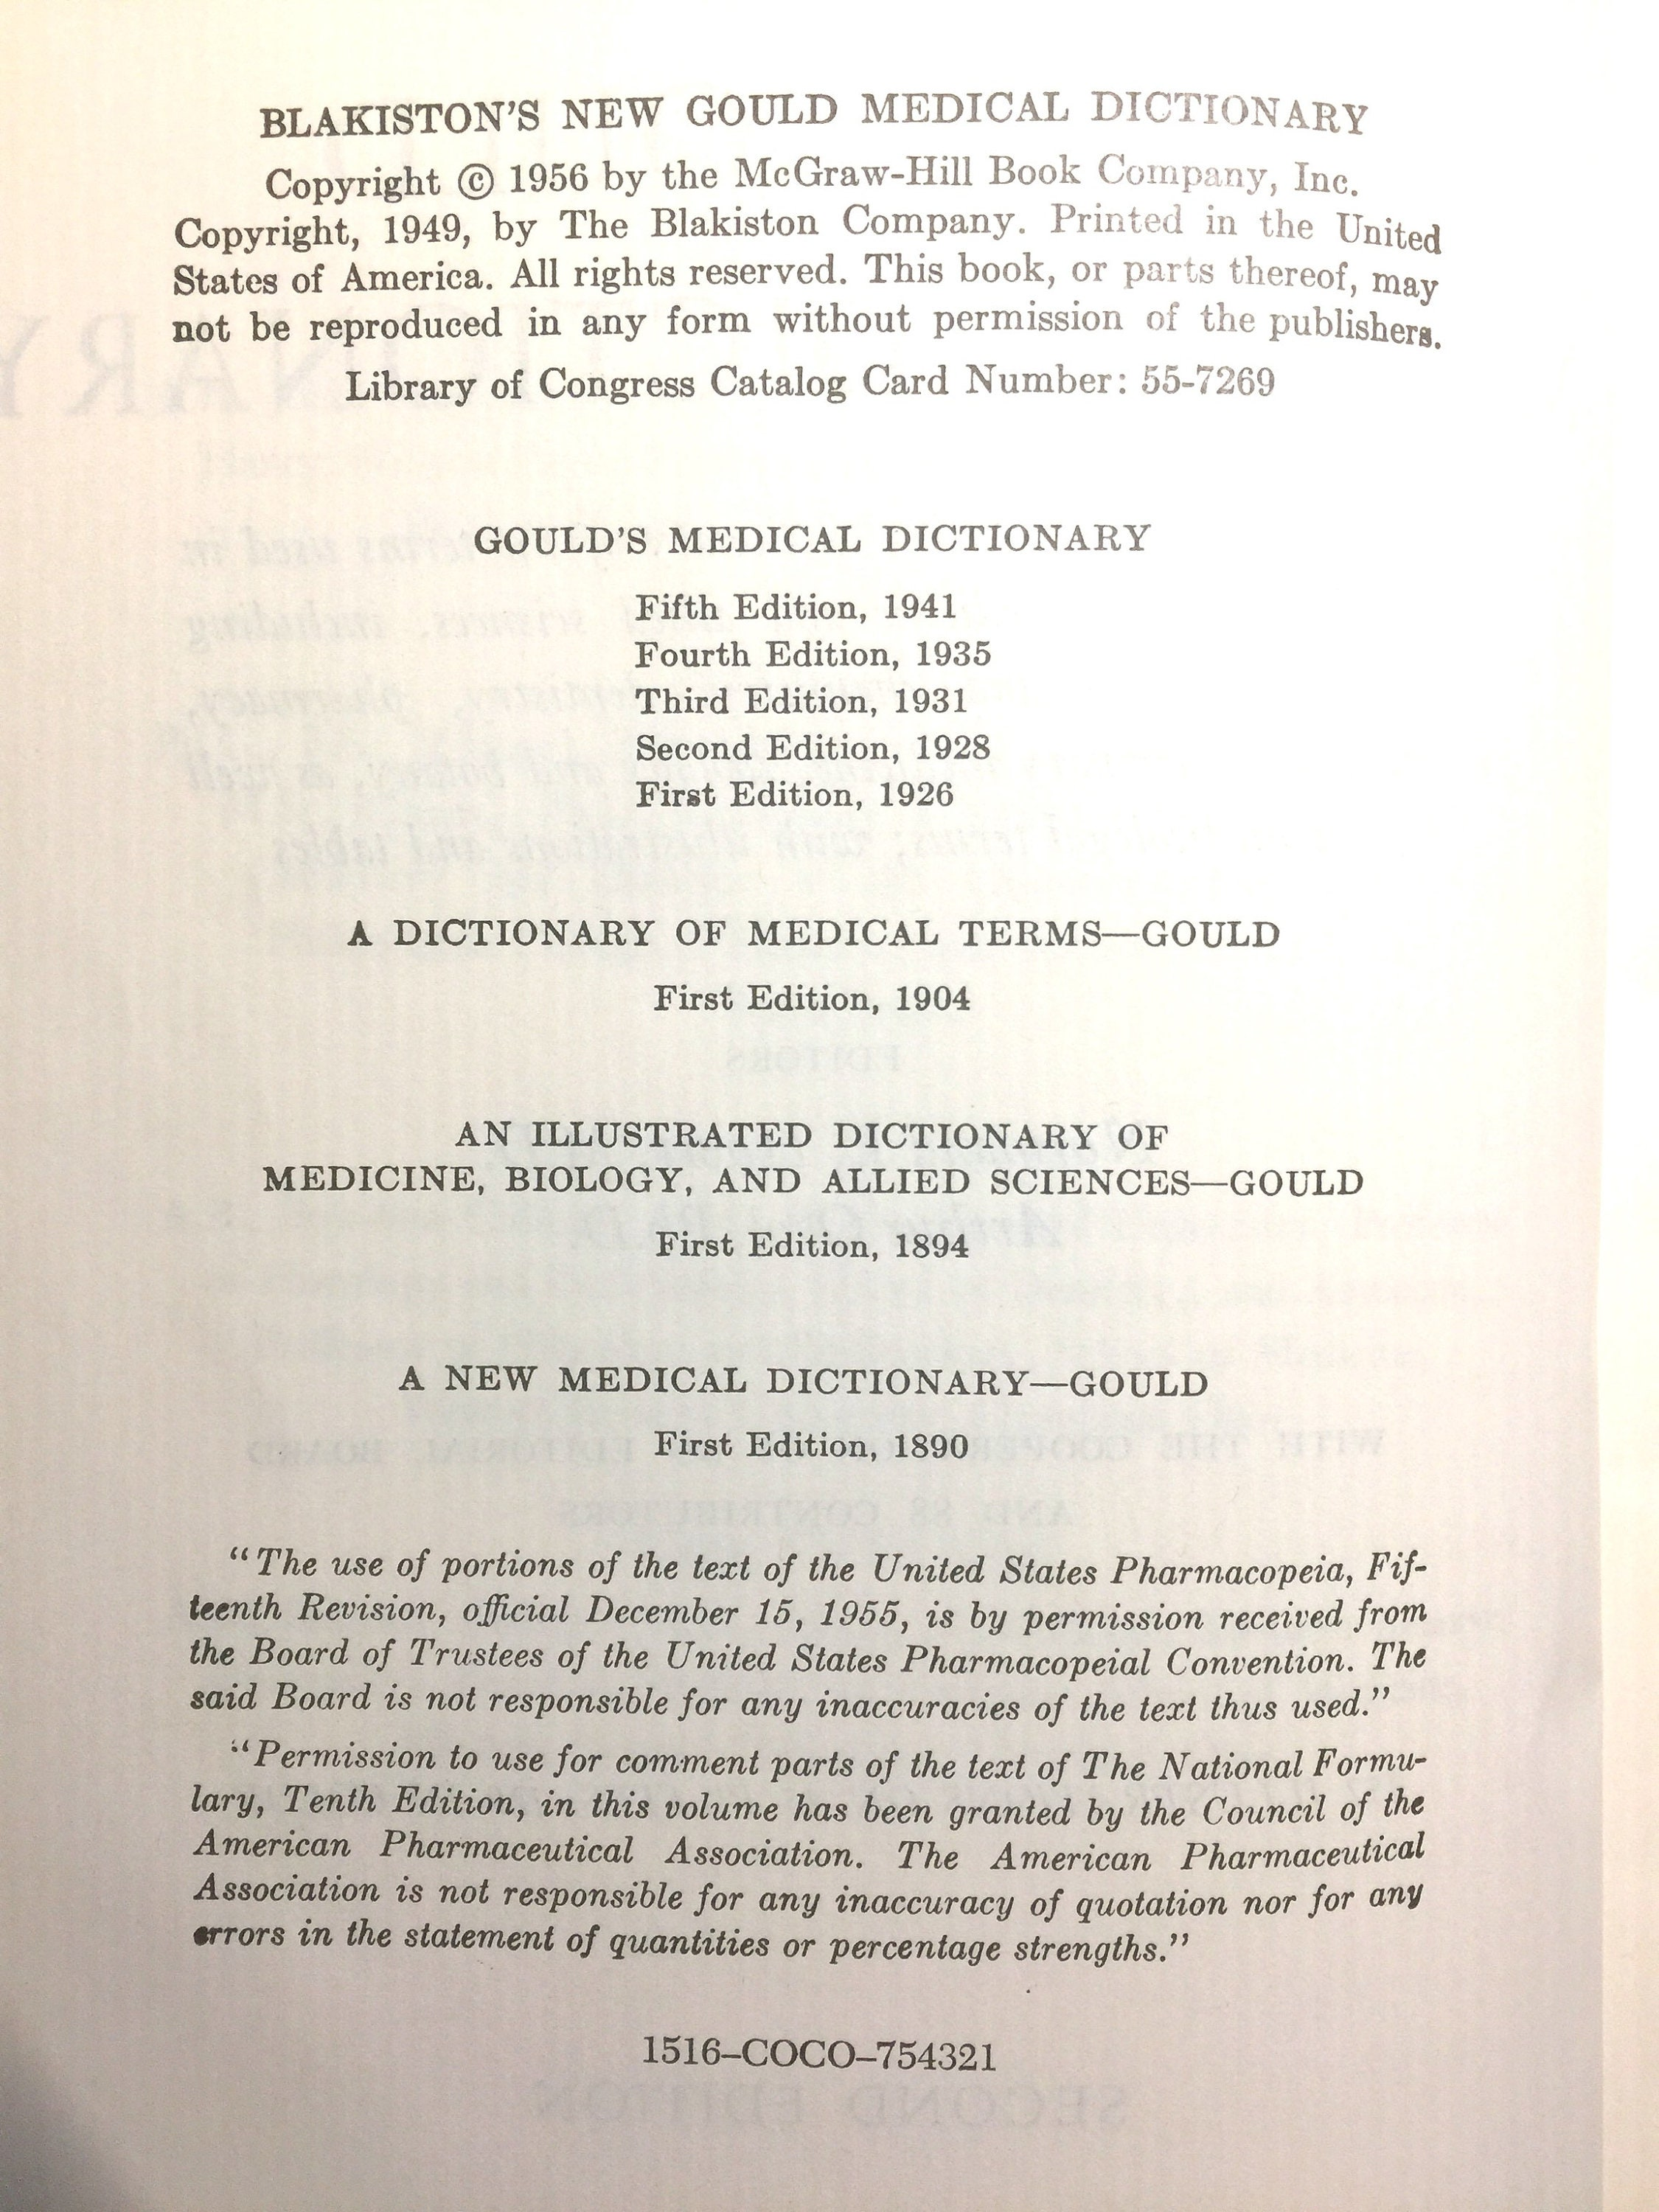 Blakiston's New Gould Medical Dictionary (illustrated) - 1956